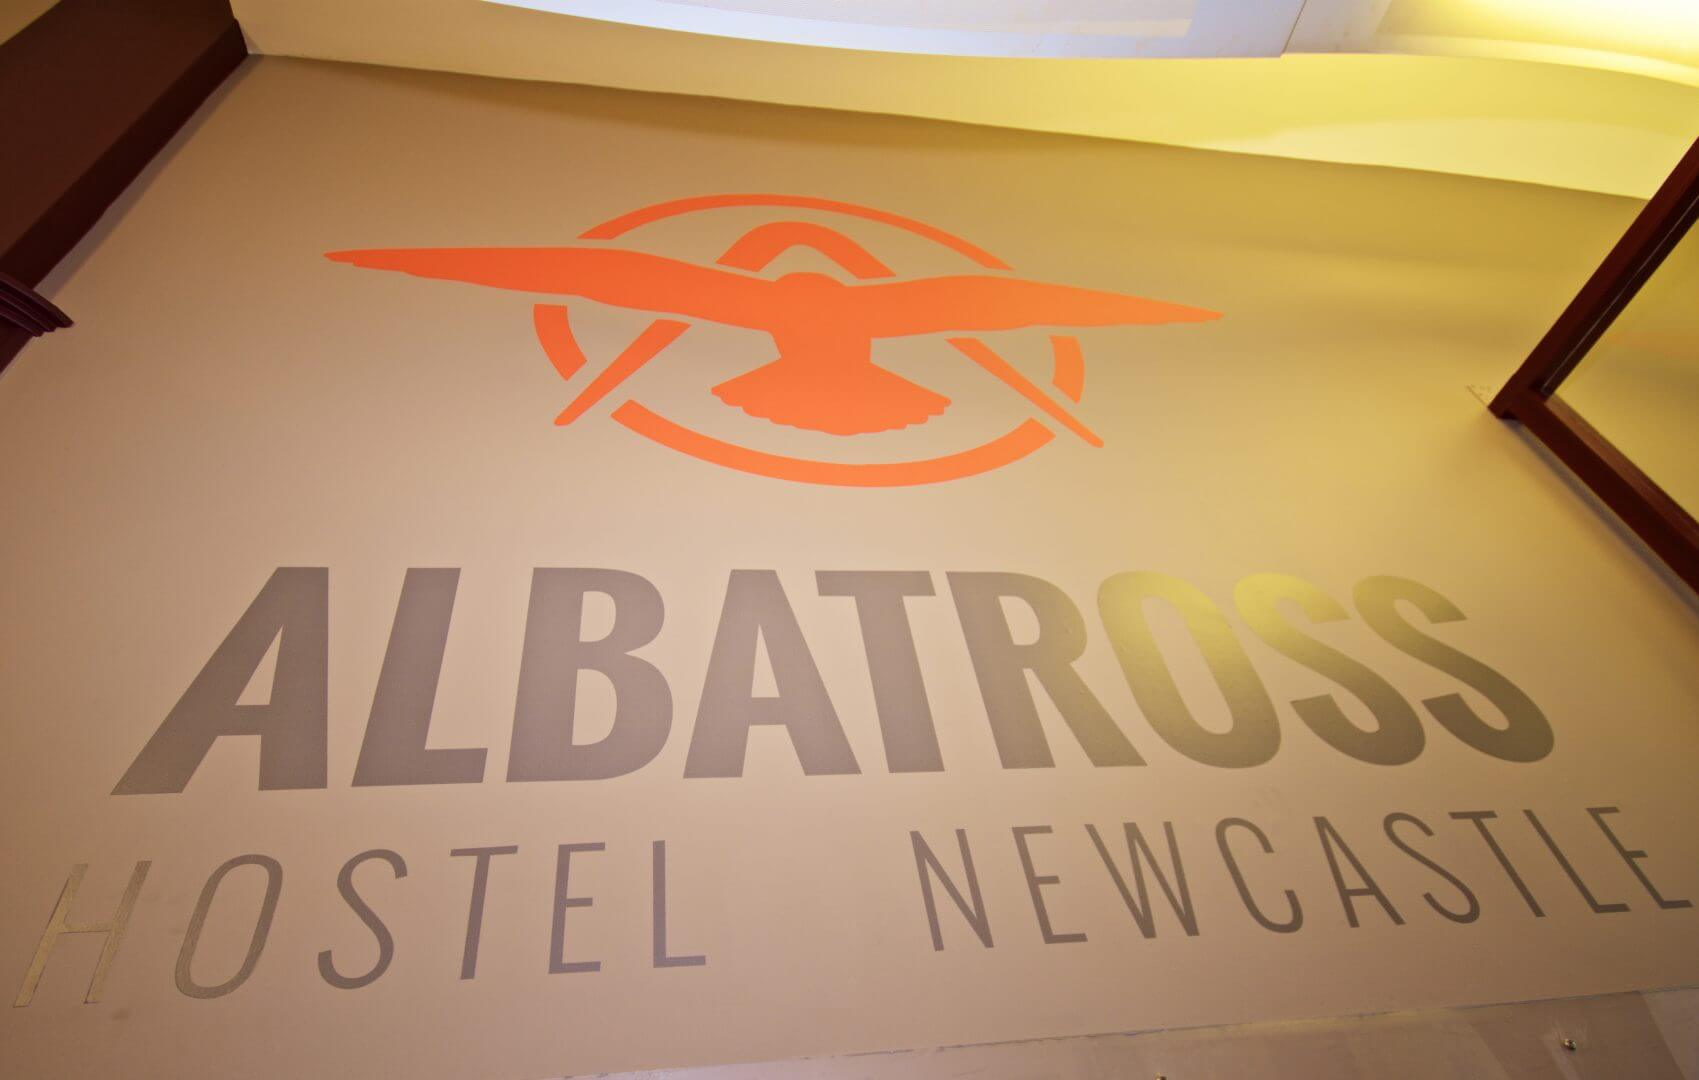 Albatross Hostel in Newcastle